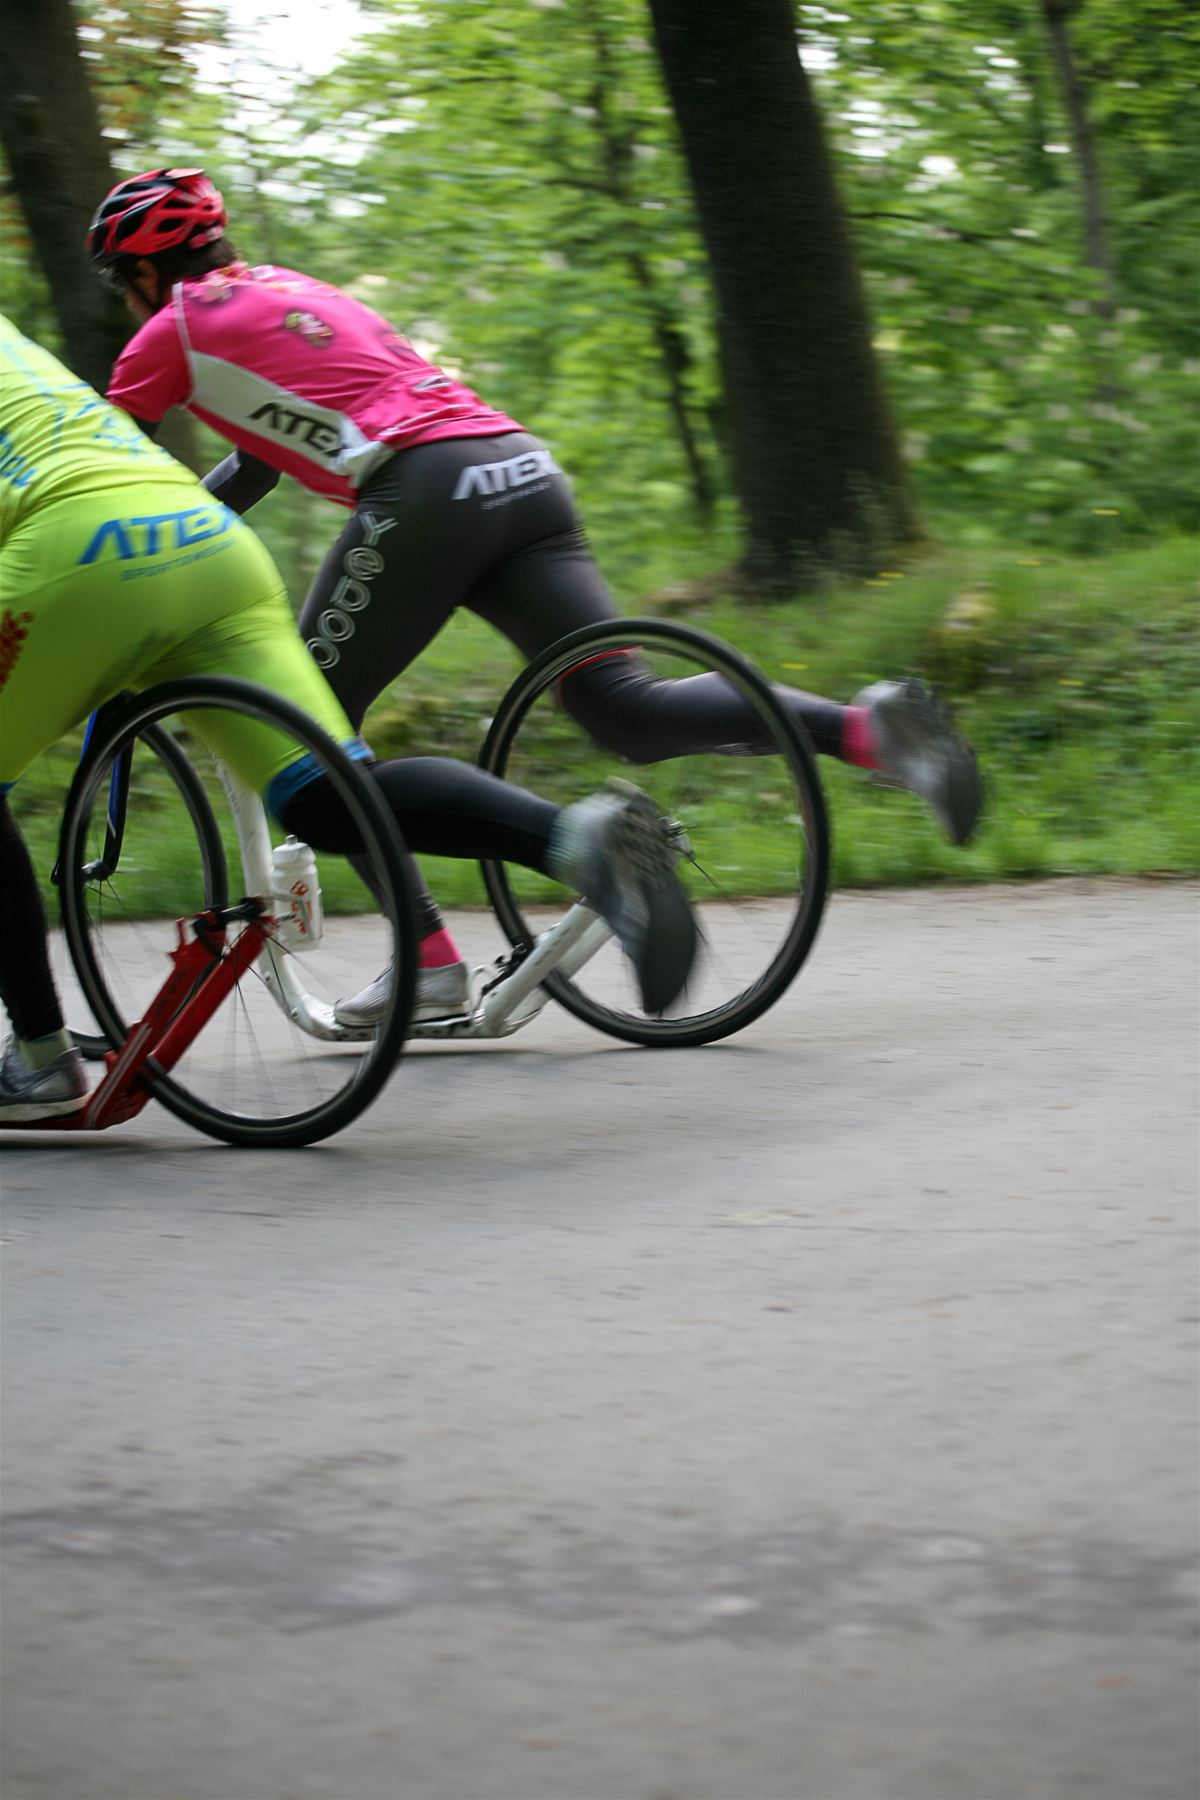 When riding uphill, push off shortly and frequently and switch legs often.